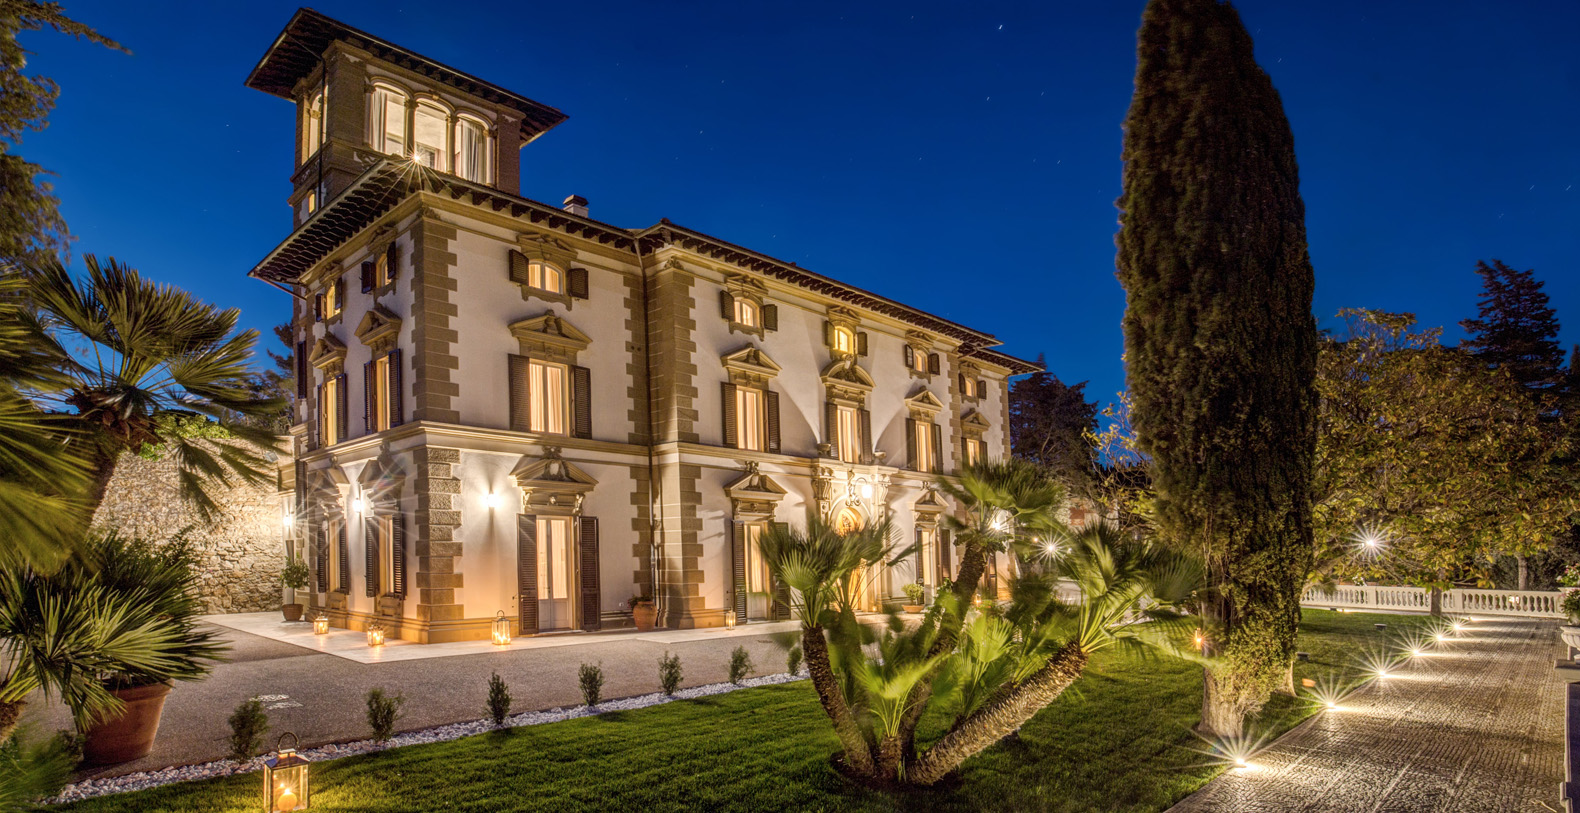 Villa Mussio Holiday Rental, Italy